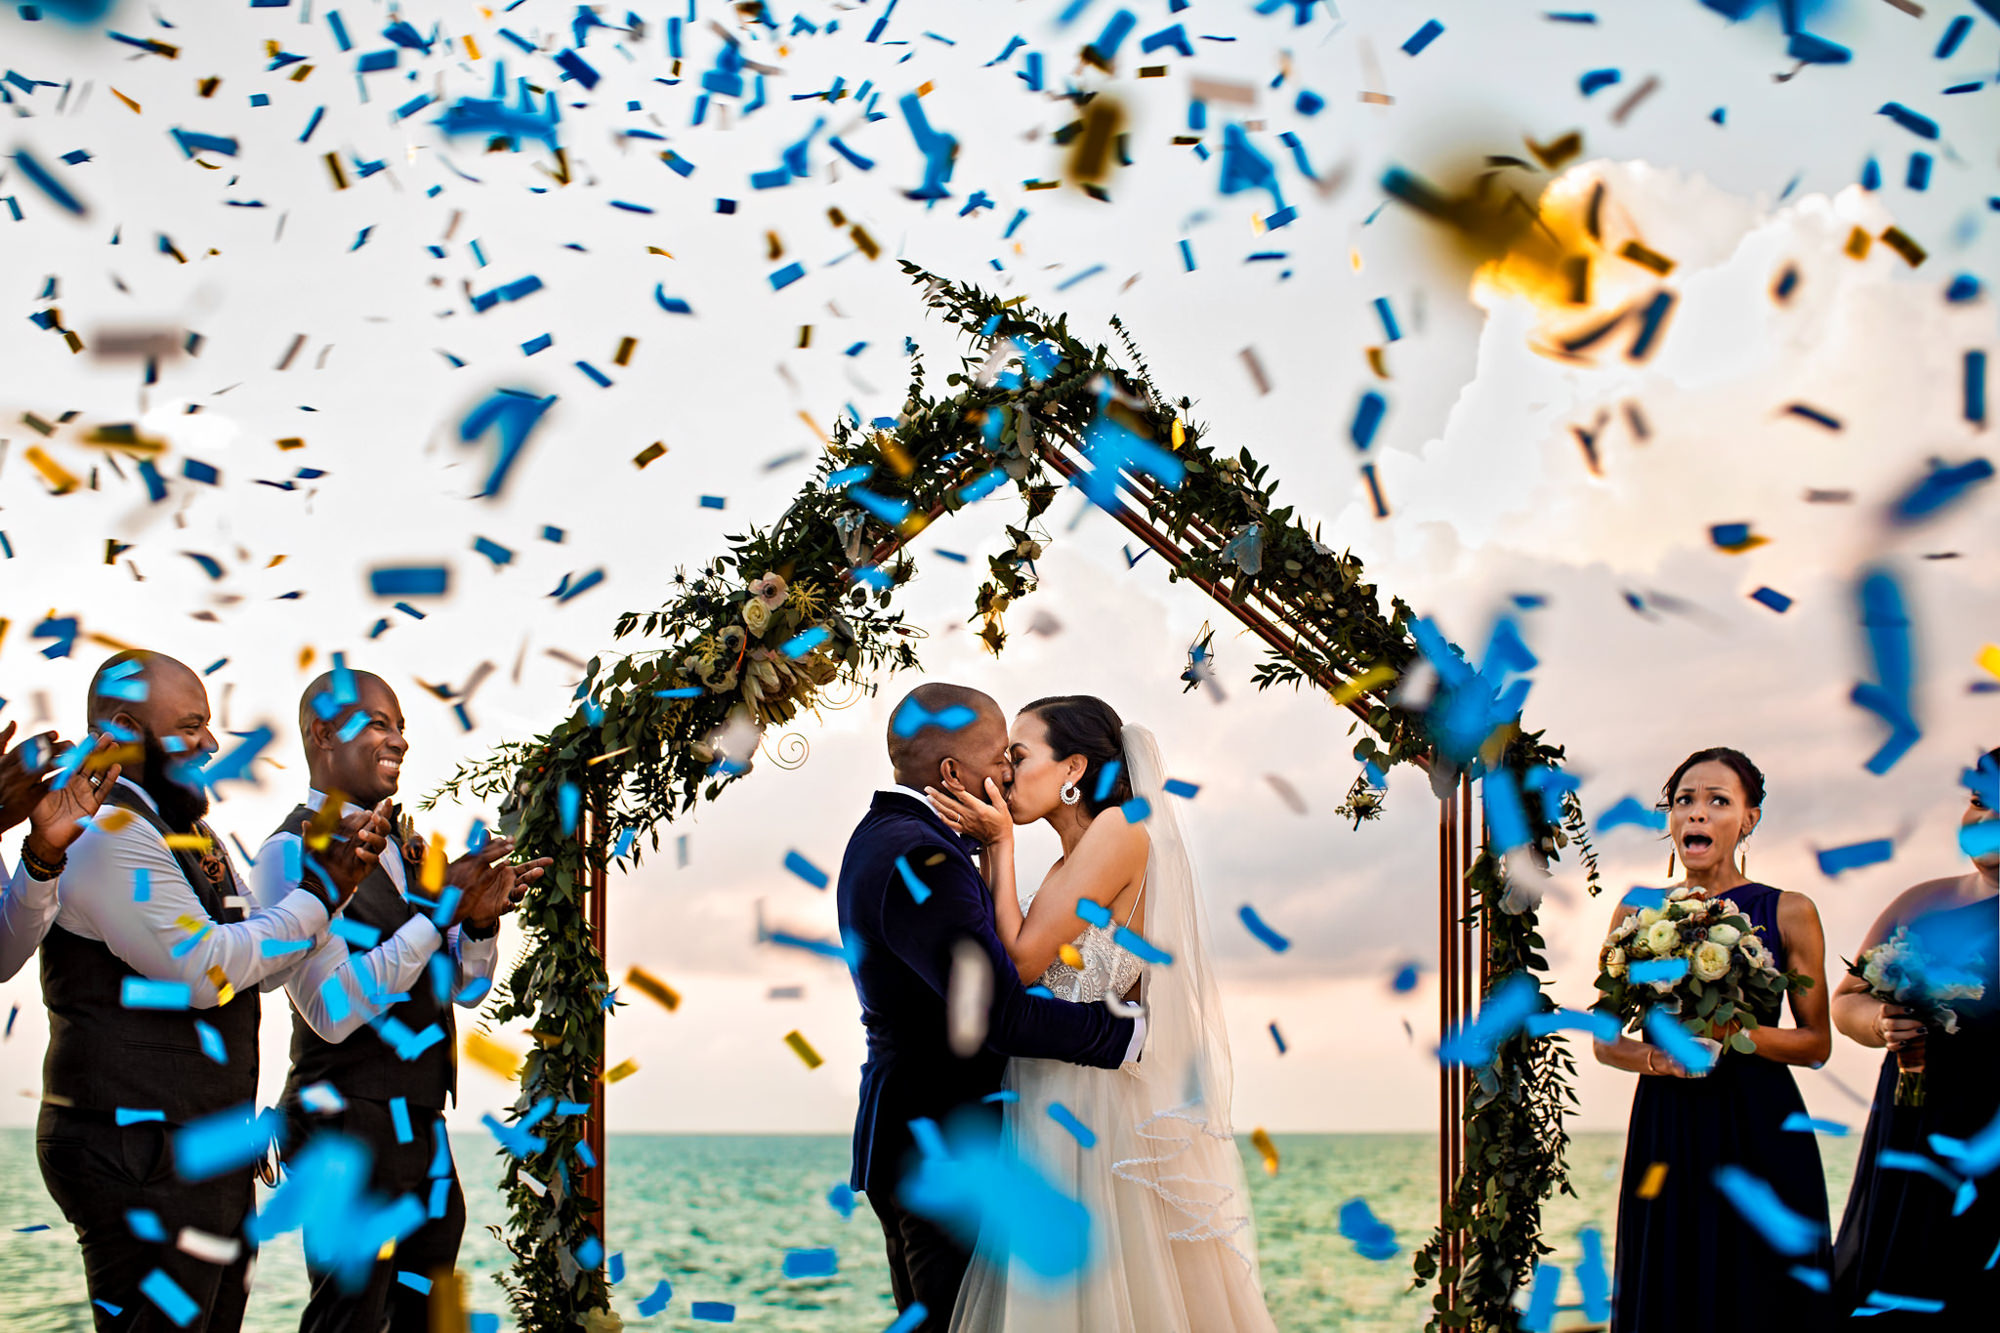 the-kiss-couple-being-showered-with-blue-confetti-worlds-best-wedding-photos-two-mann-canada-wedding-photographers